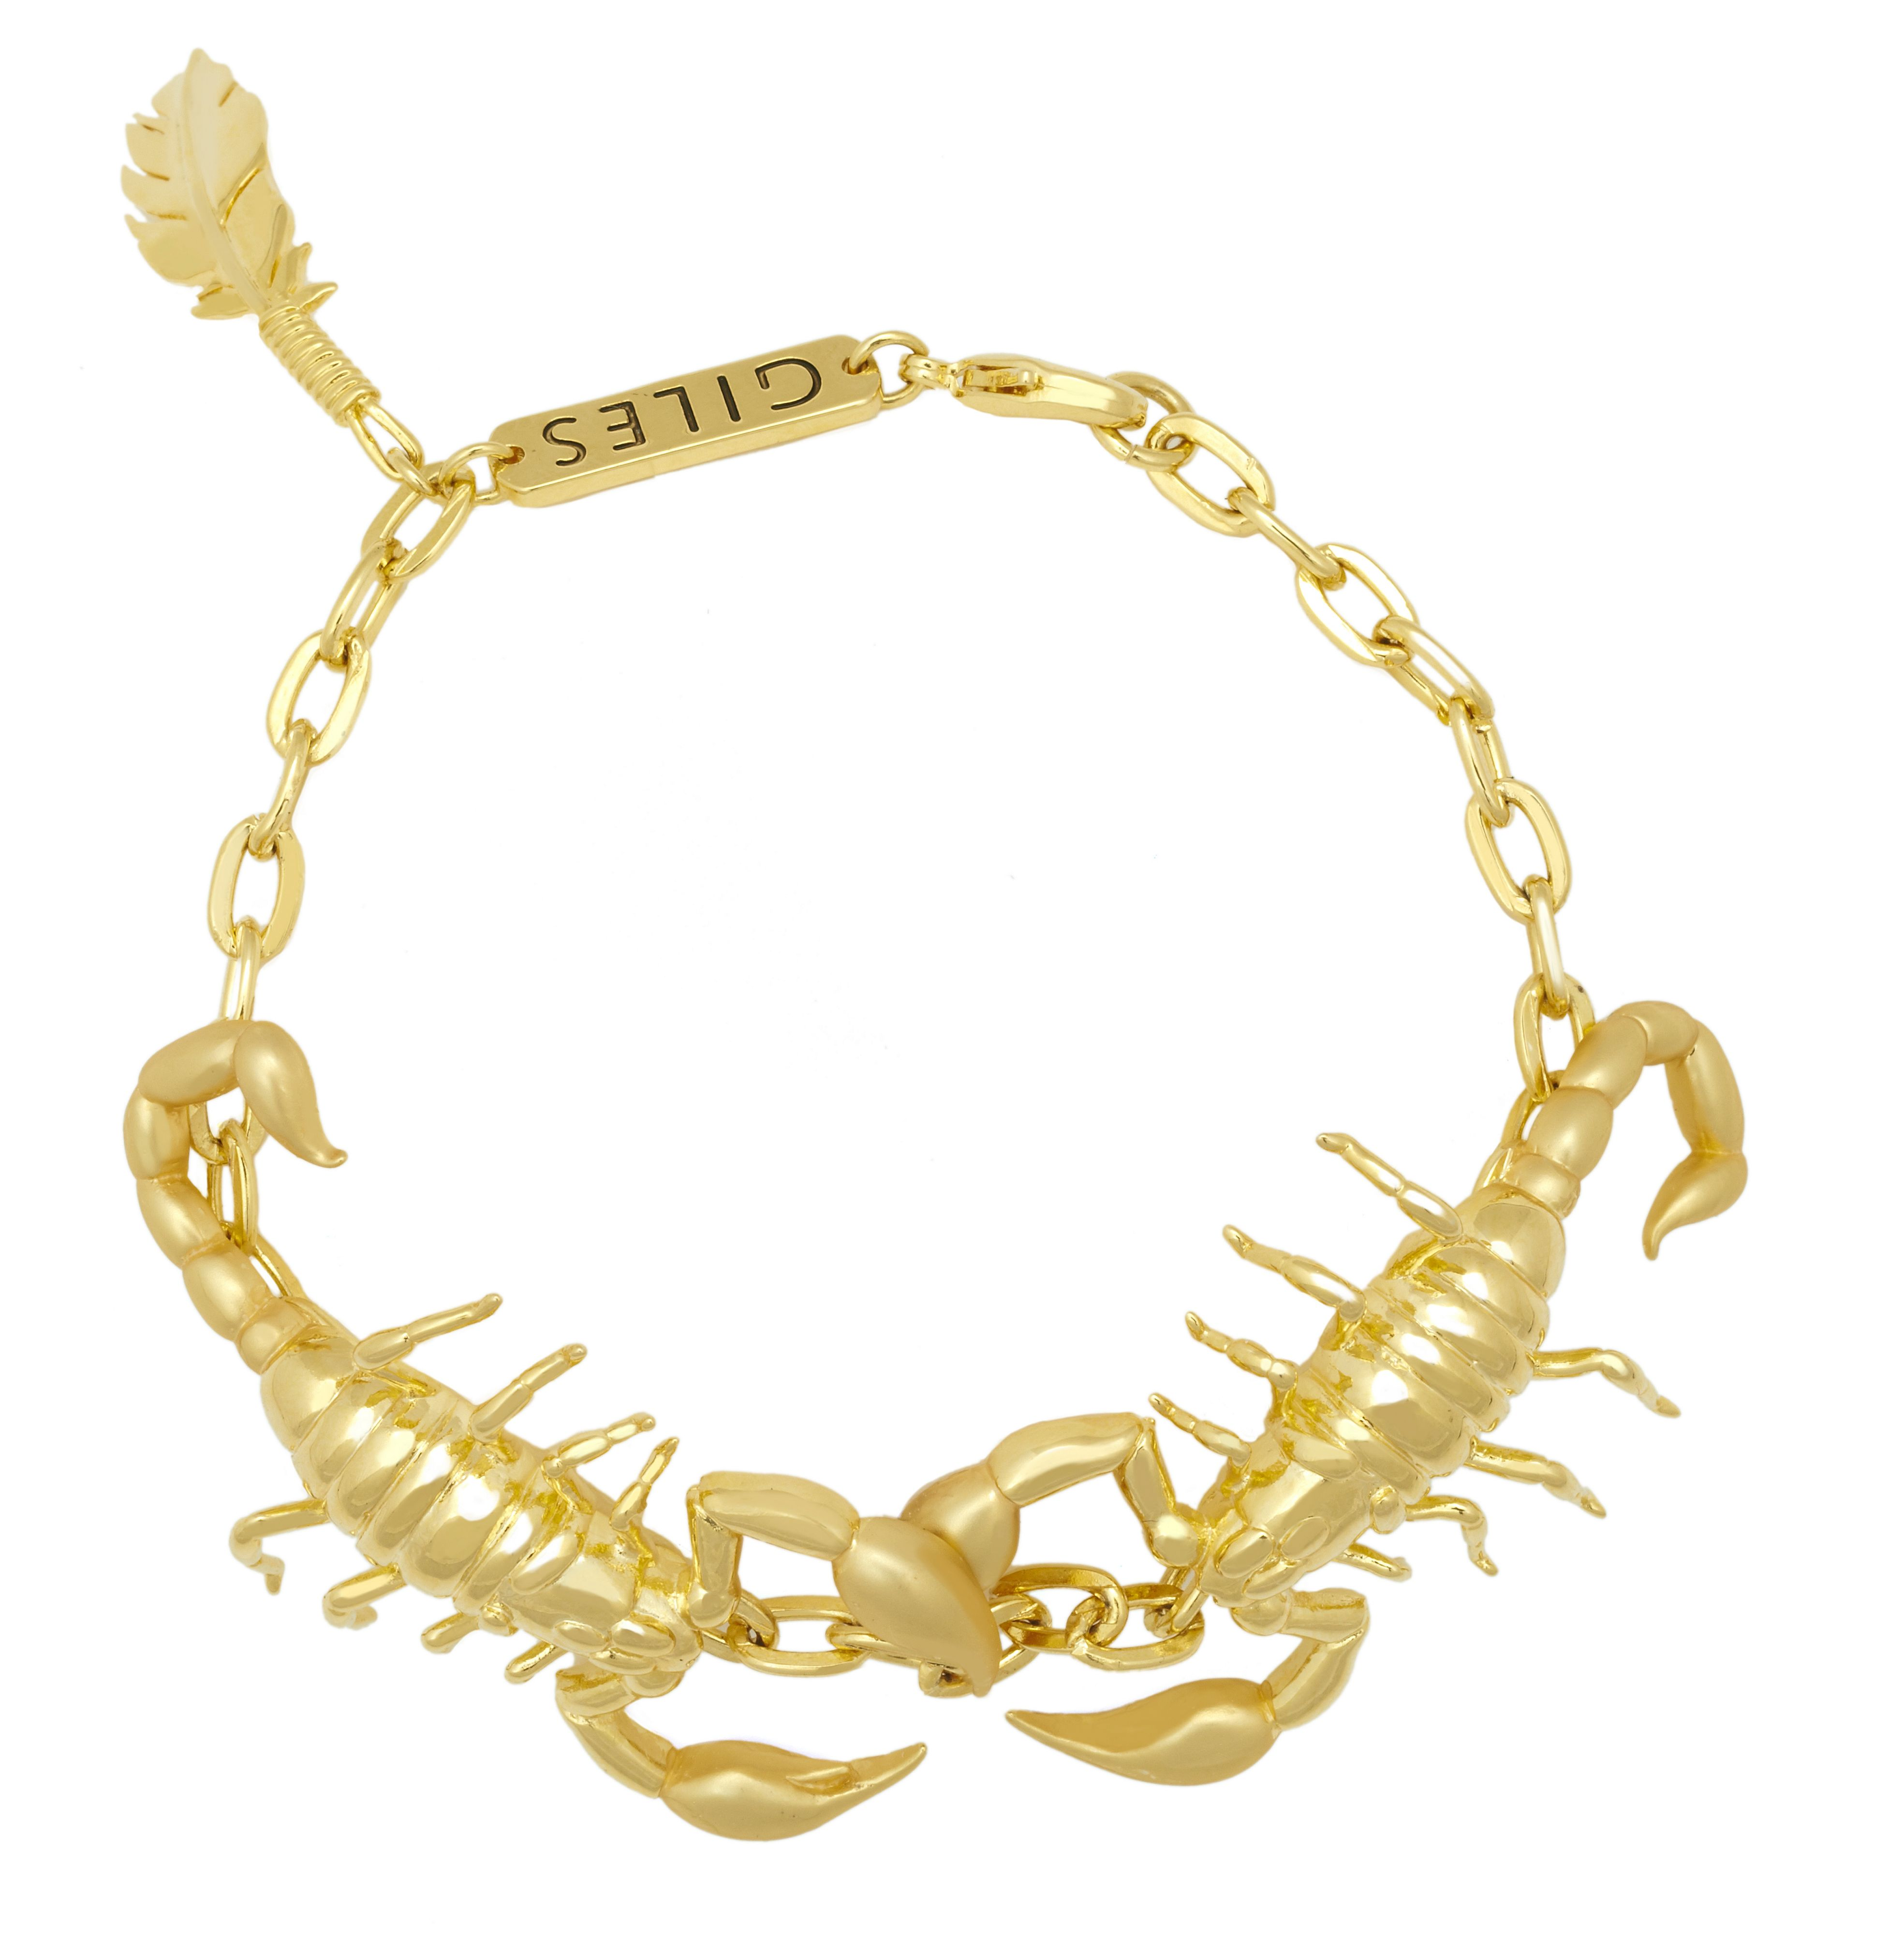 Yellow gold scorpion bracelet